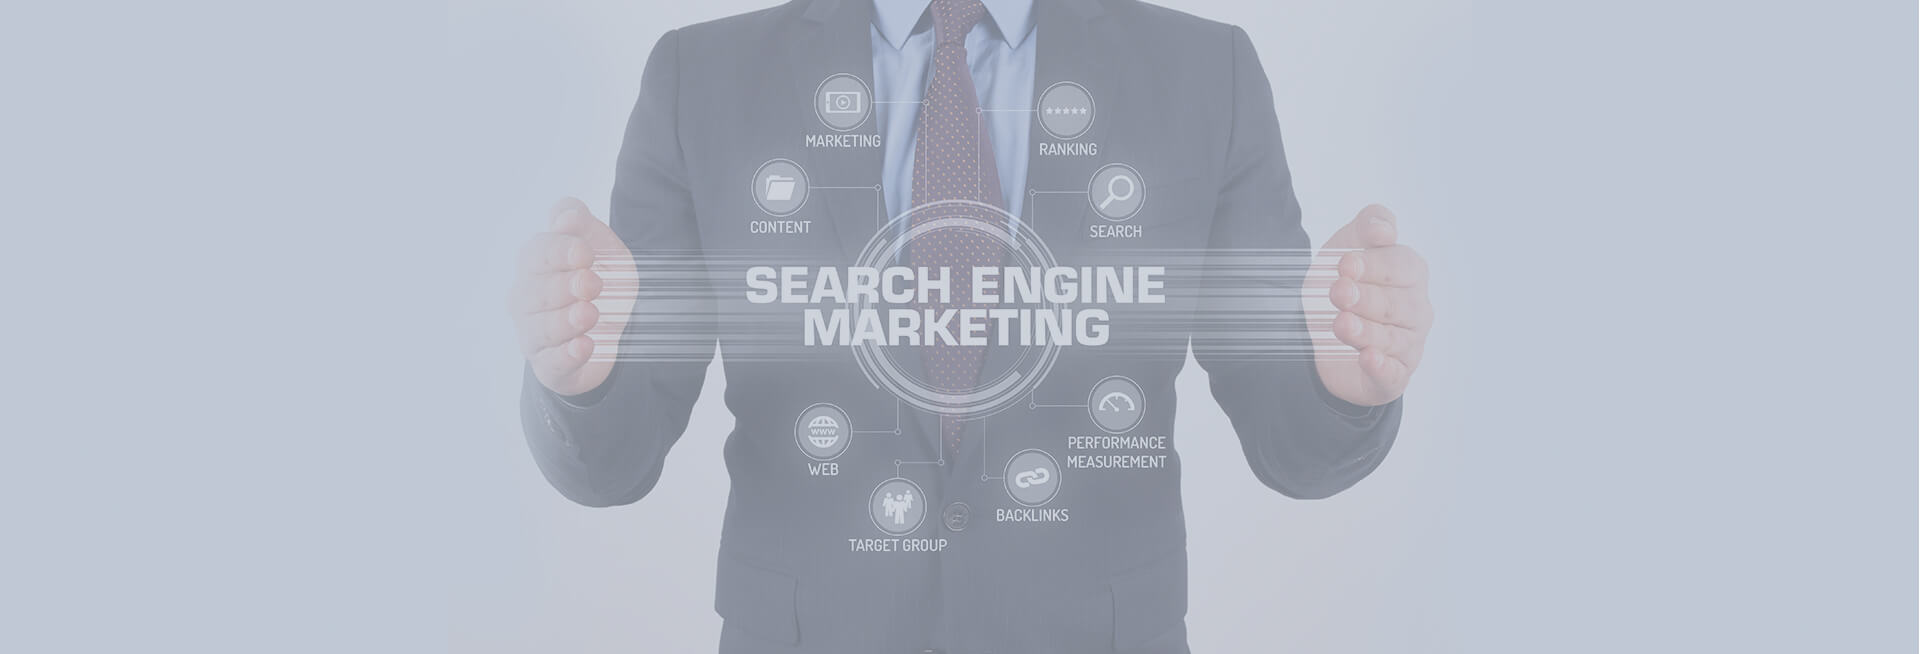 Pelwhiz Capabilities - Search Engine Ranking Services - Search Engine Marketing